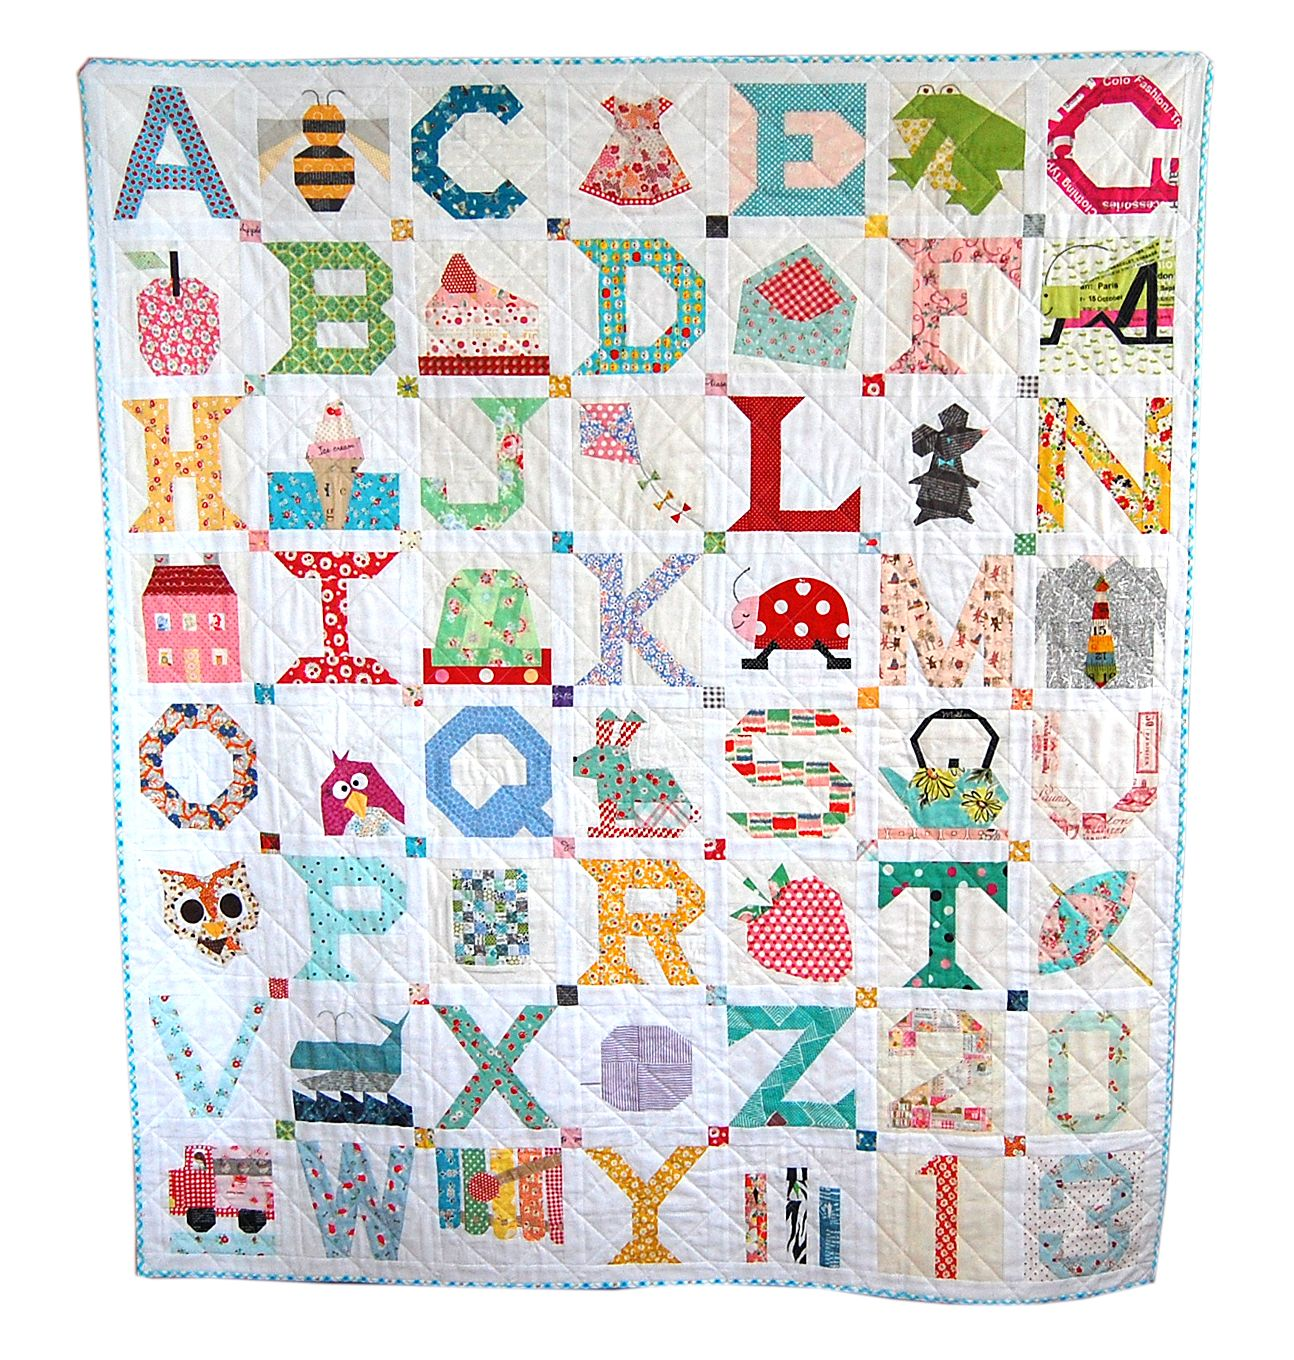 - from the 318 Patchwork Patterns The most amazing gift ever!